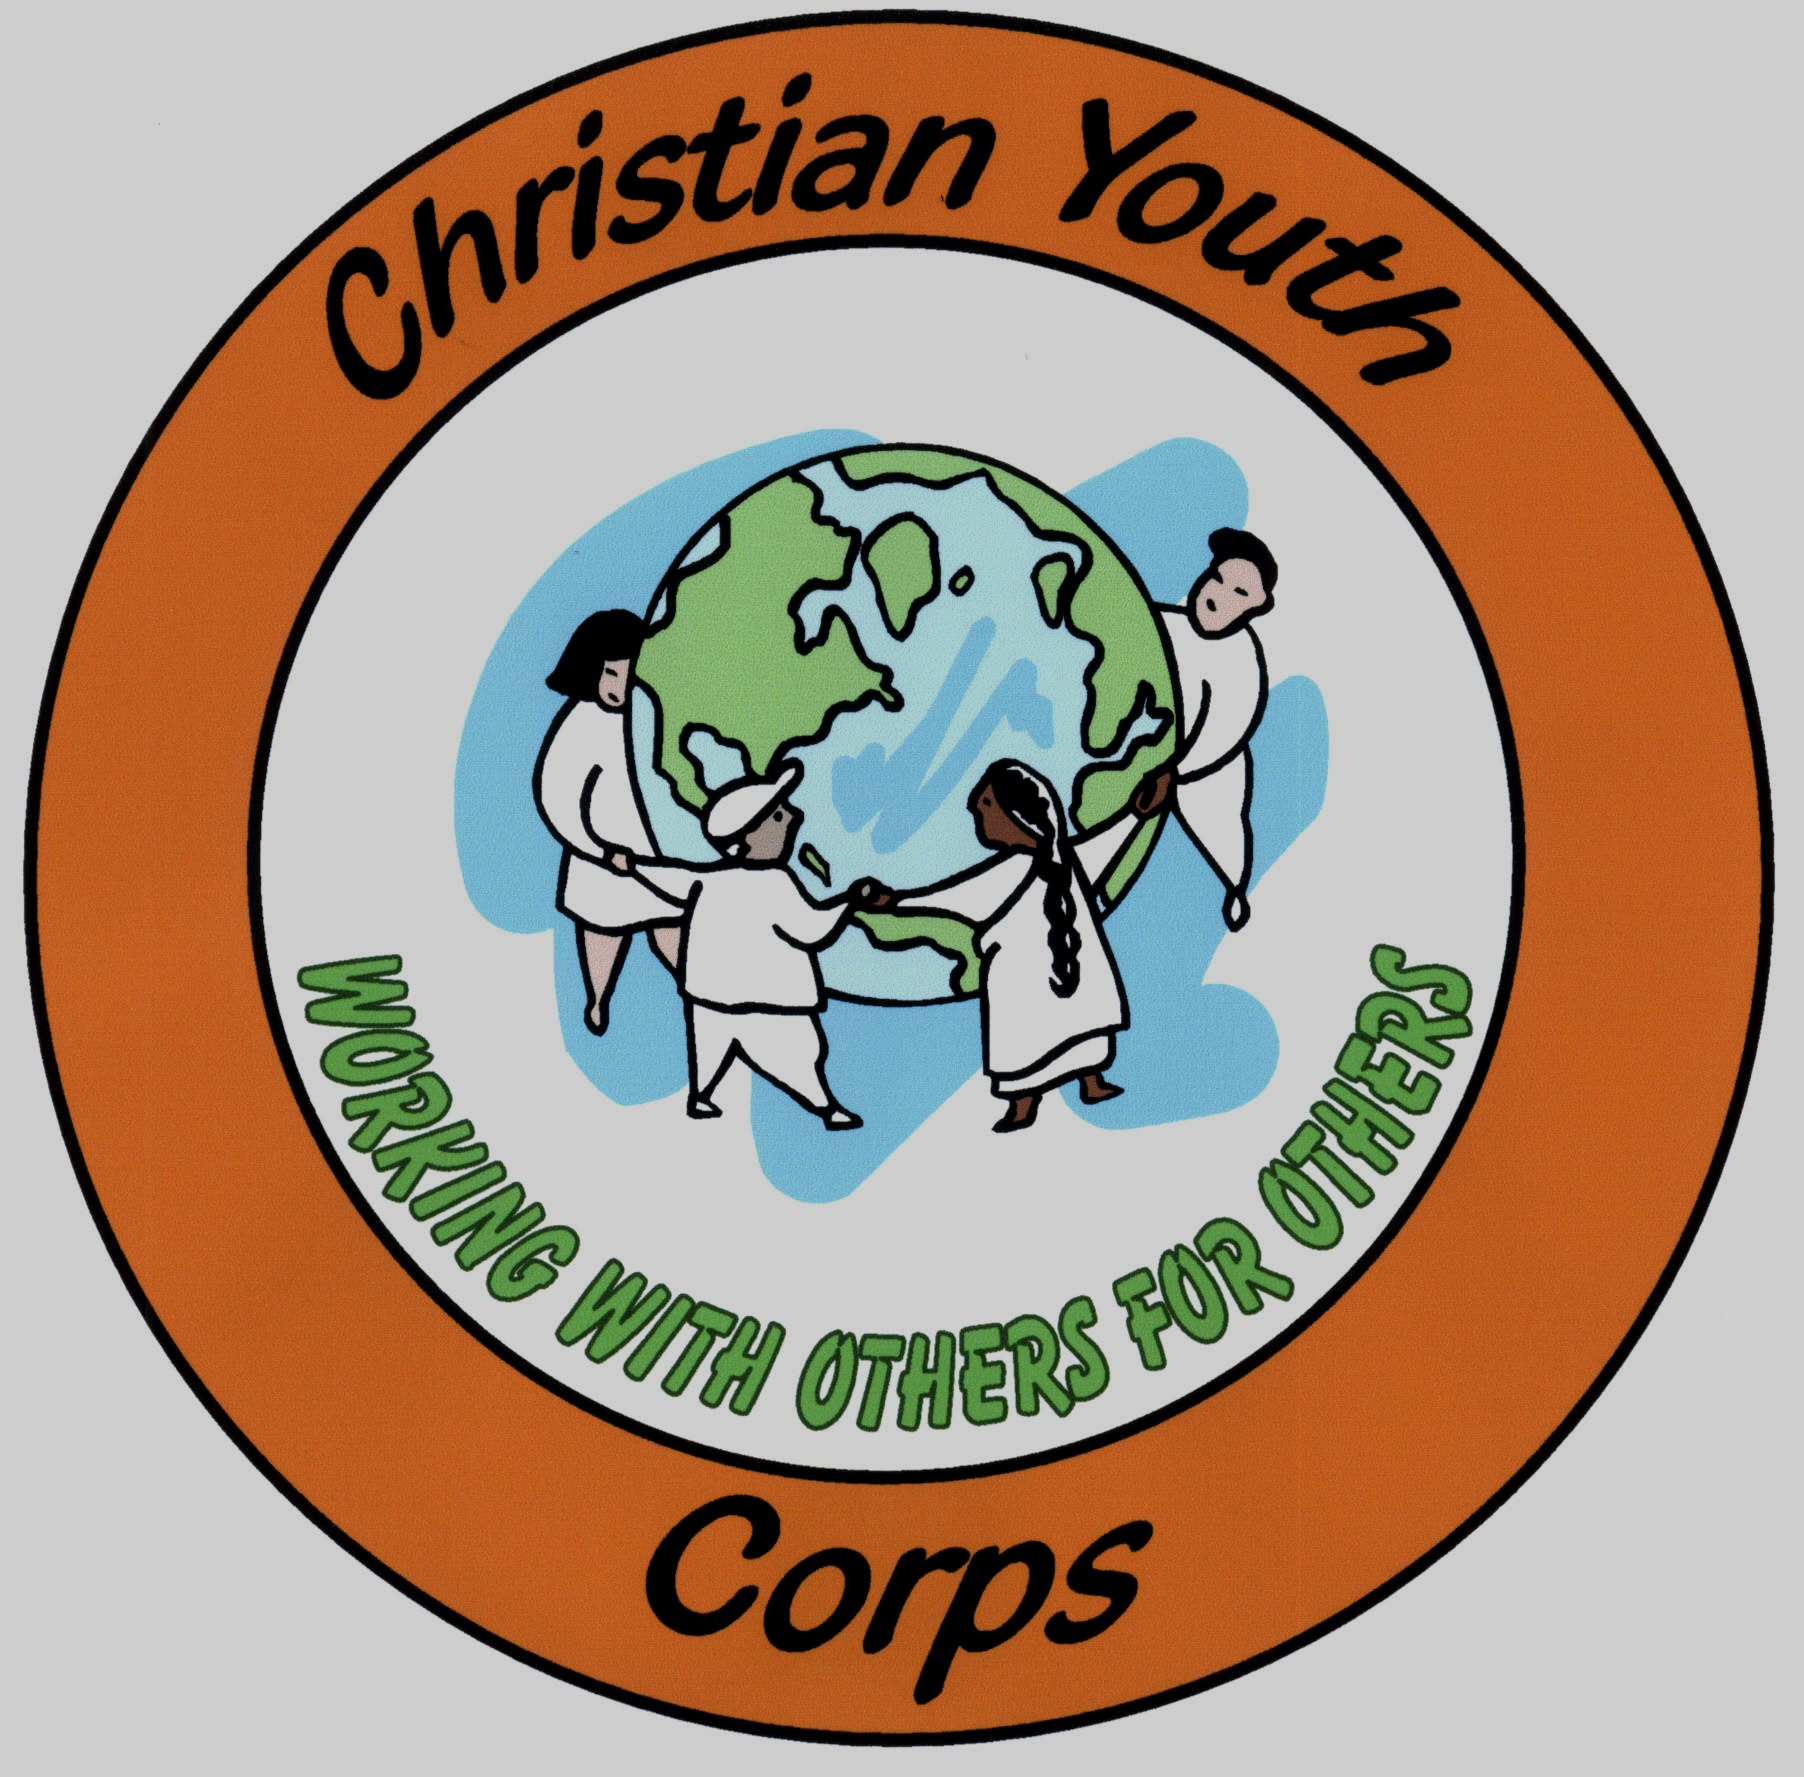 Christian Youth Corps, Inc.